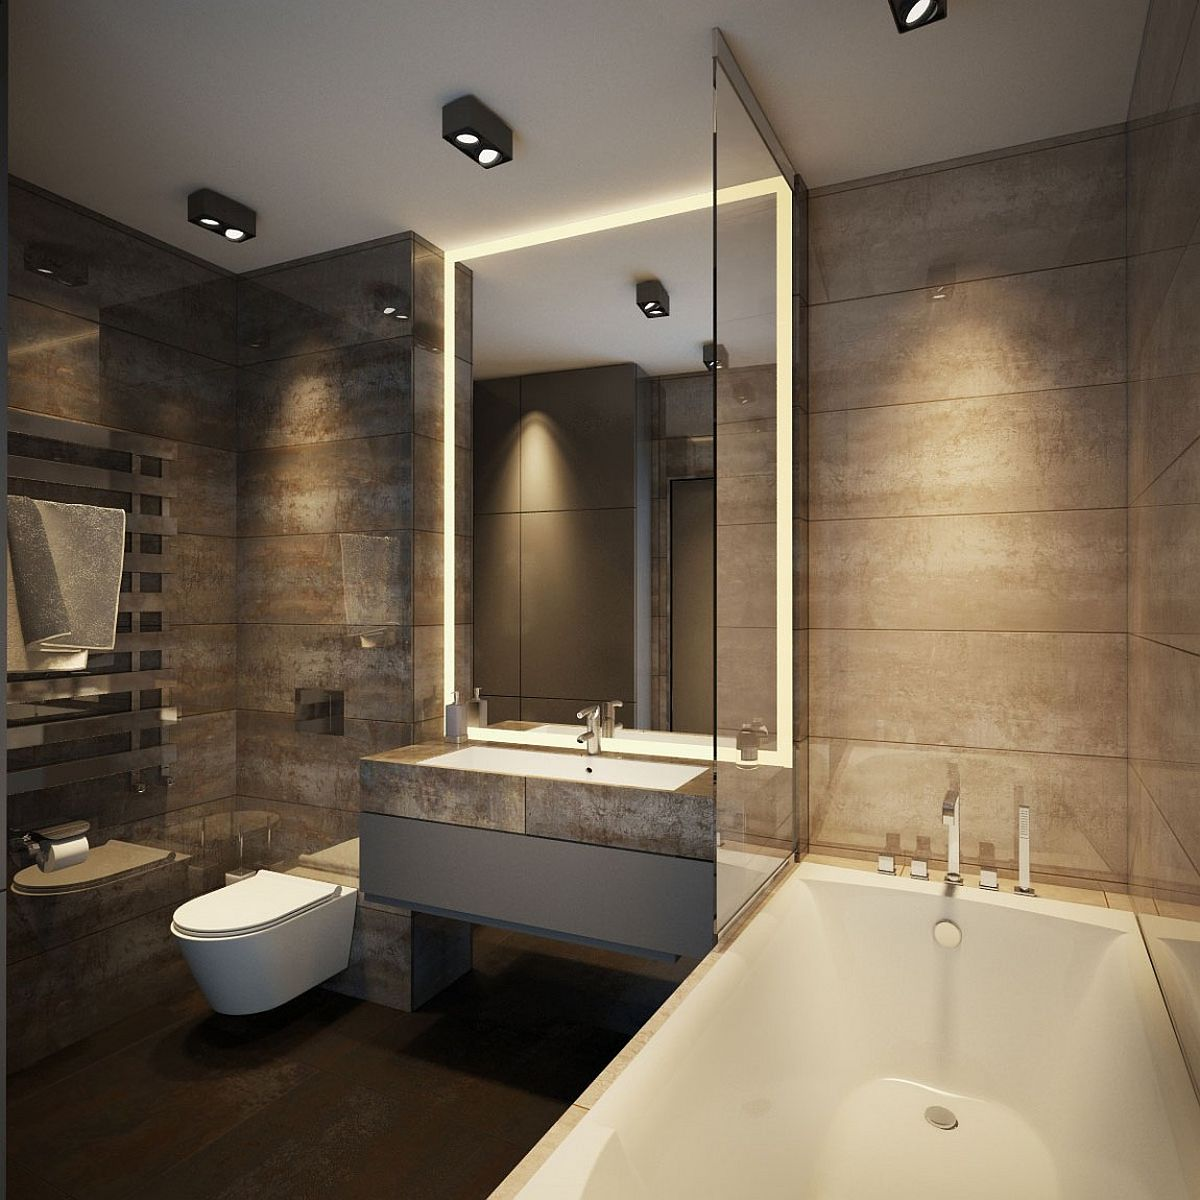 Apartment ernst in kiev inspired by posh hotel ambiance for Toilet designs pictures